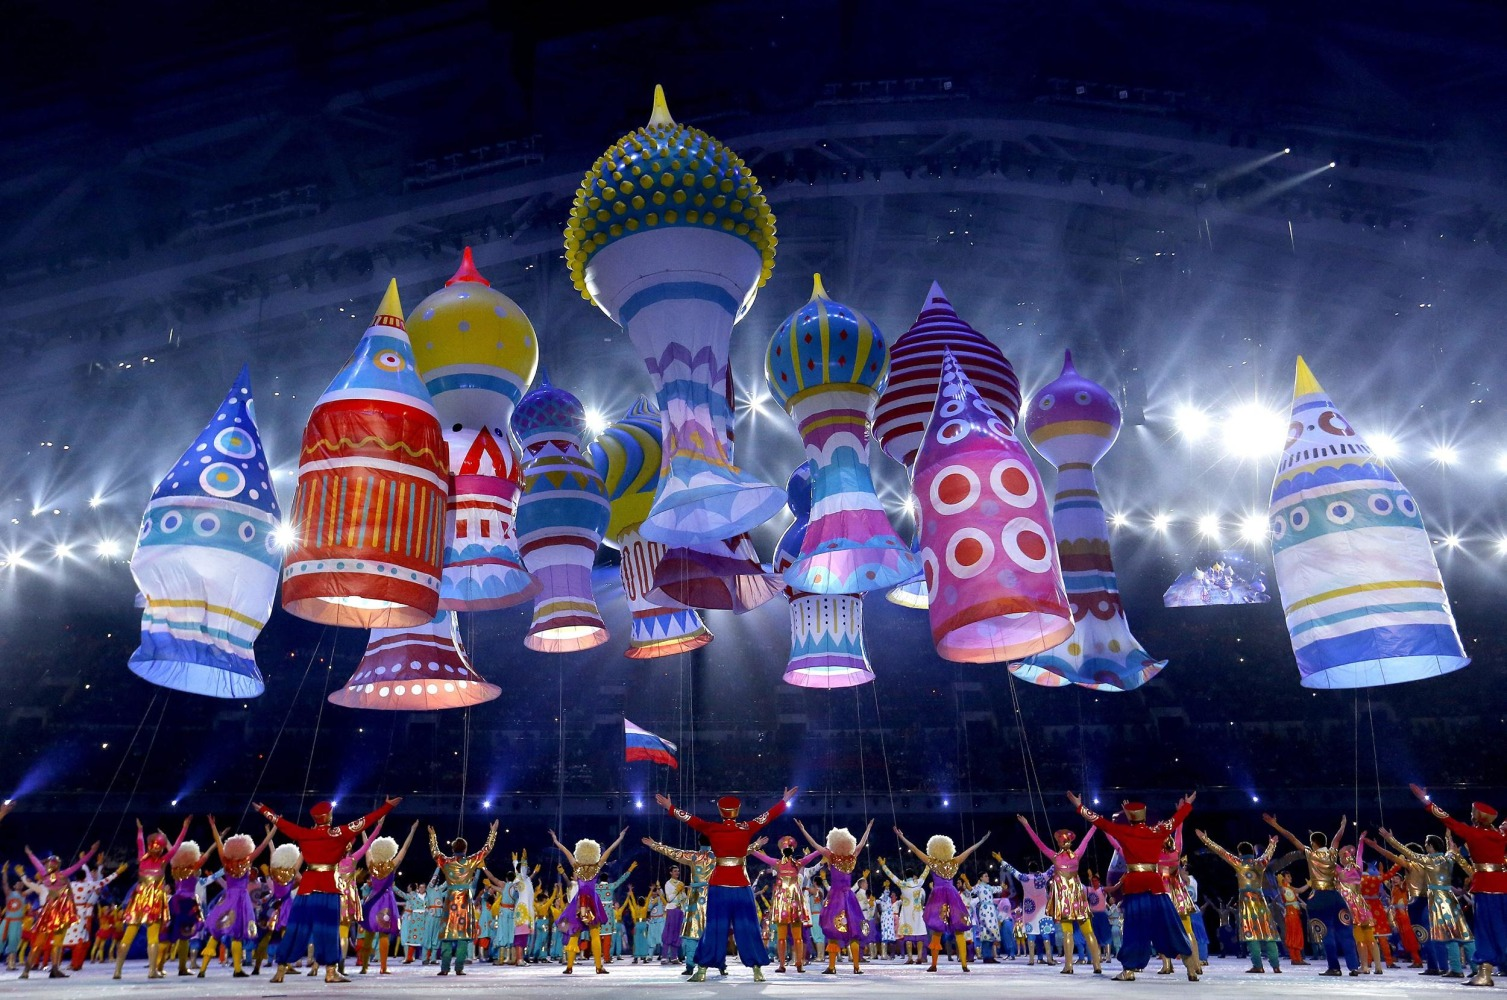 opening ceremonies Opening ceremonies-xxiii olympiad 1984 1984 serigraph image size 42″ x 28″ (10668 x 7112 cm) a limited edition of 600 numbered impressions 100ap, 18pp, signed by the artist.